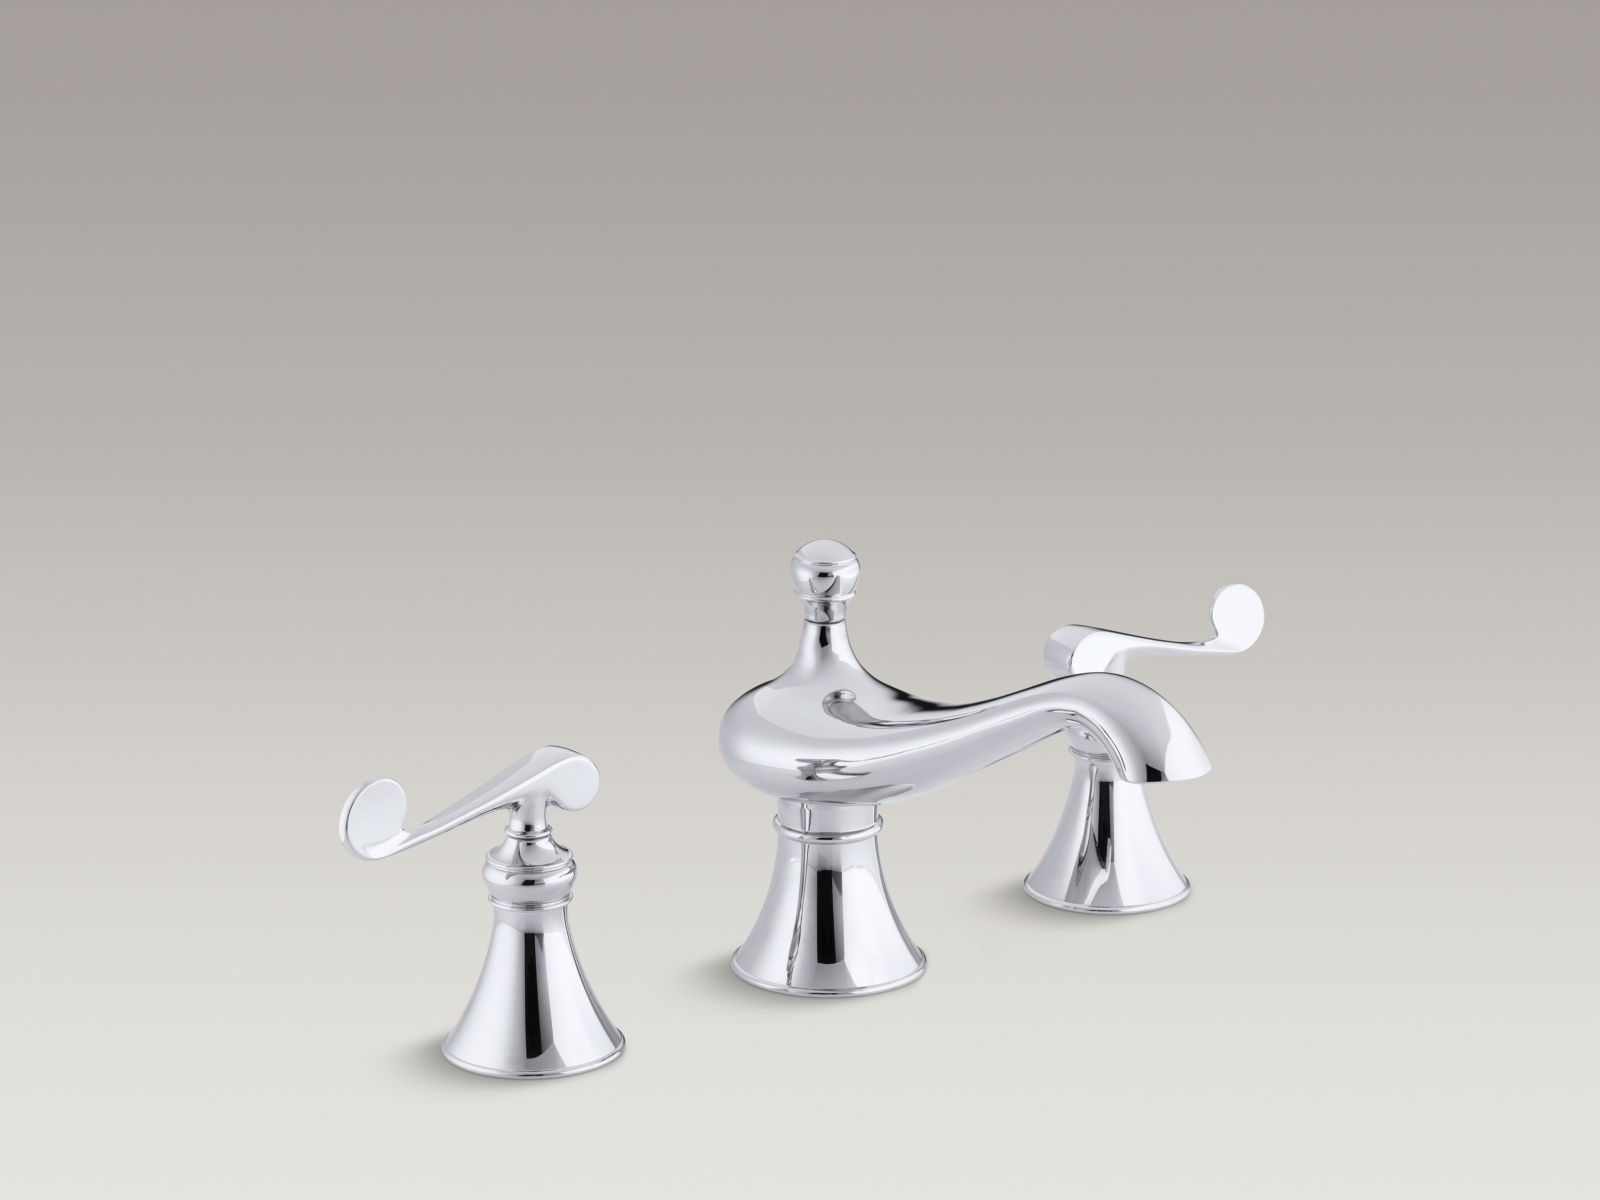 Ideas, buyplumbing category bathtub filler intended for size 1600 x 1200  .